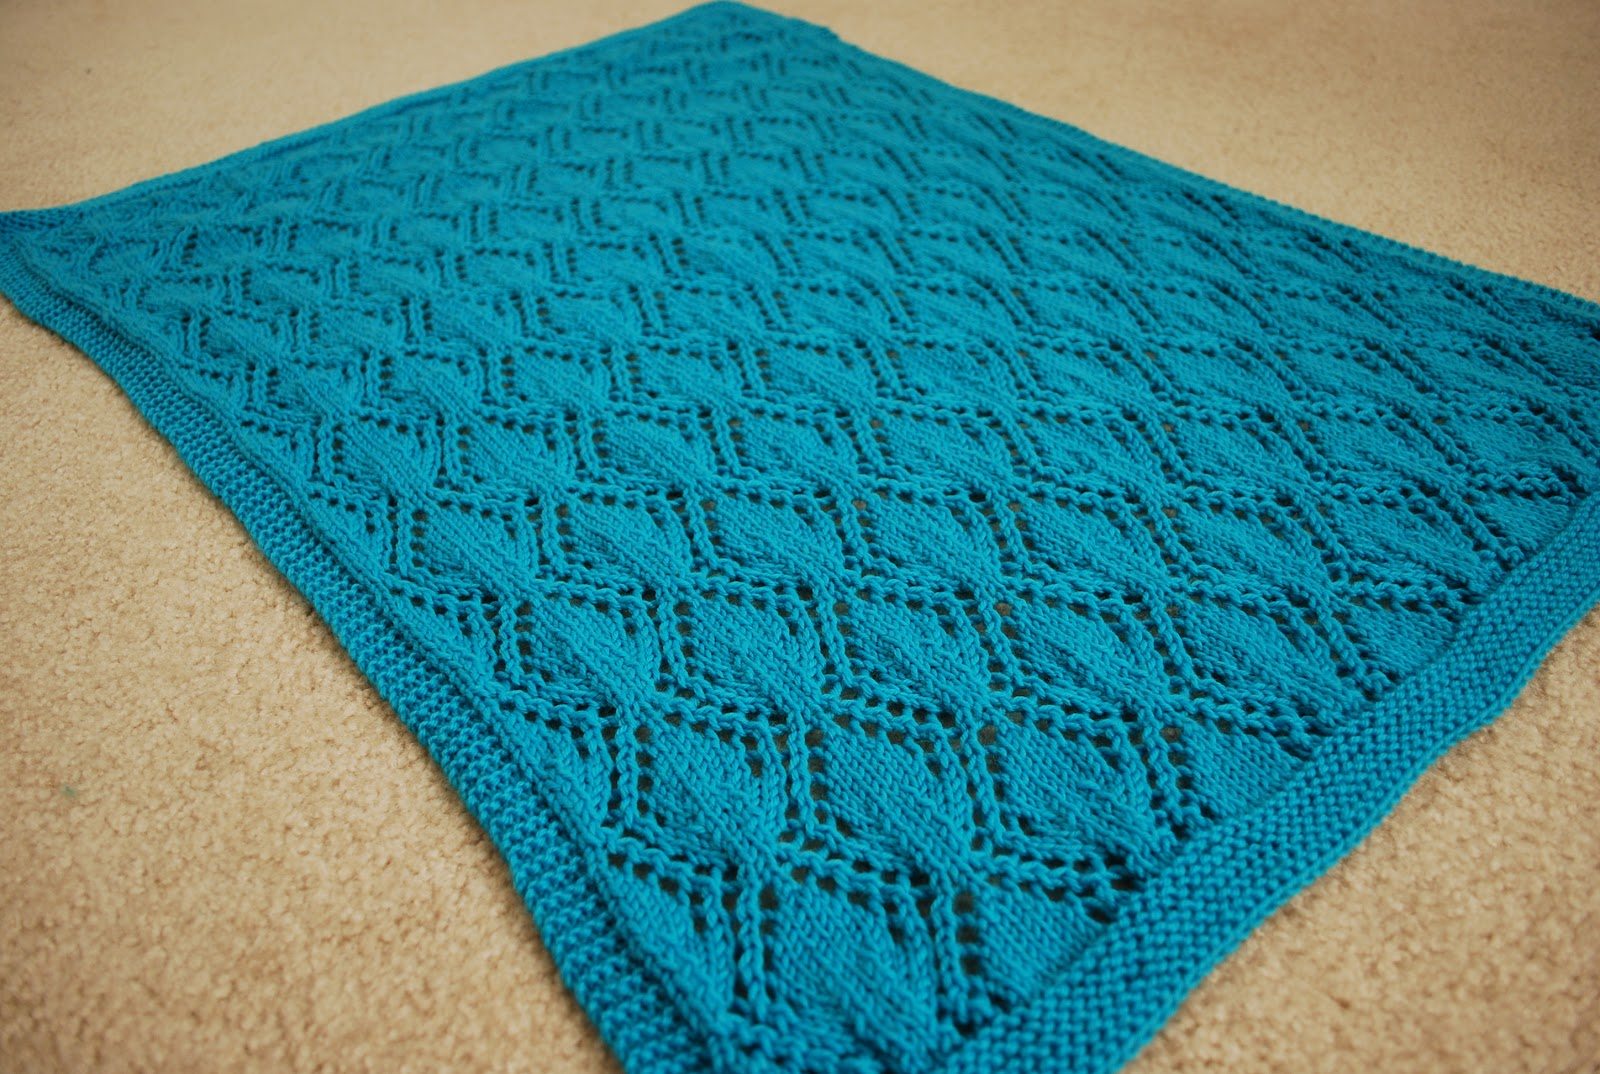 Knitting Pattern For Leaf Design Baby Blanket : Knit/Wit: Pattern Release: Gothic Leaves Baby Blanket